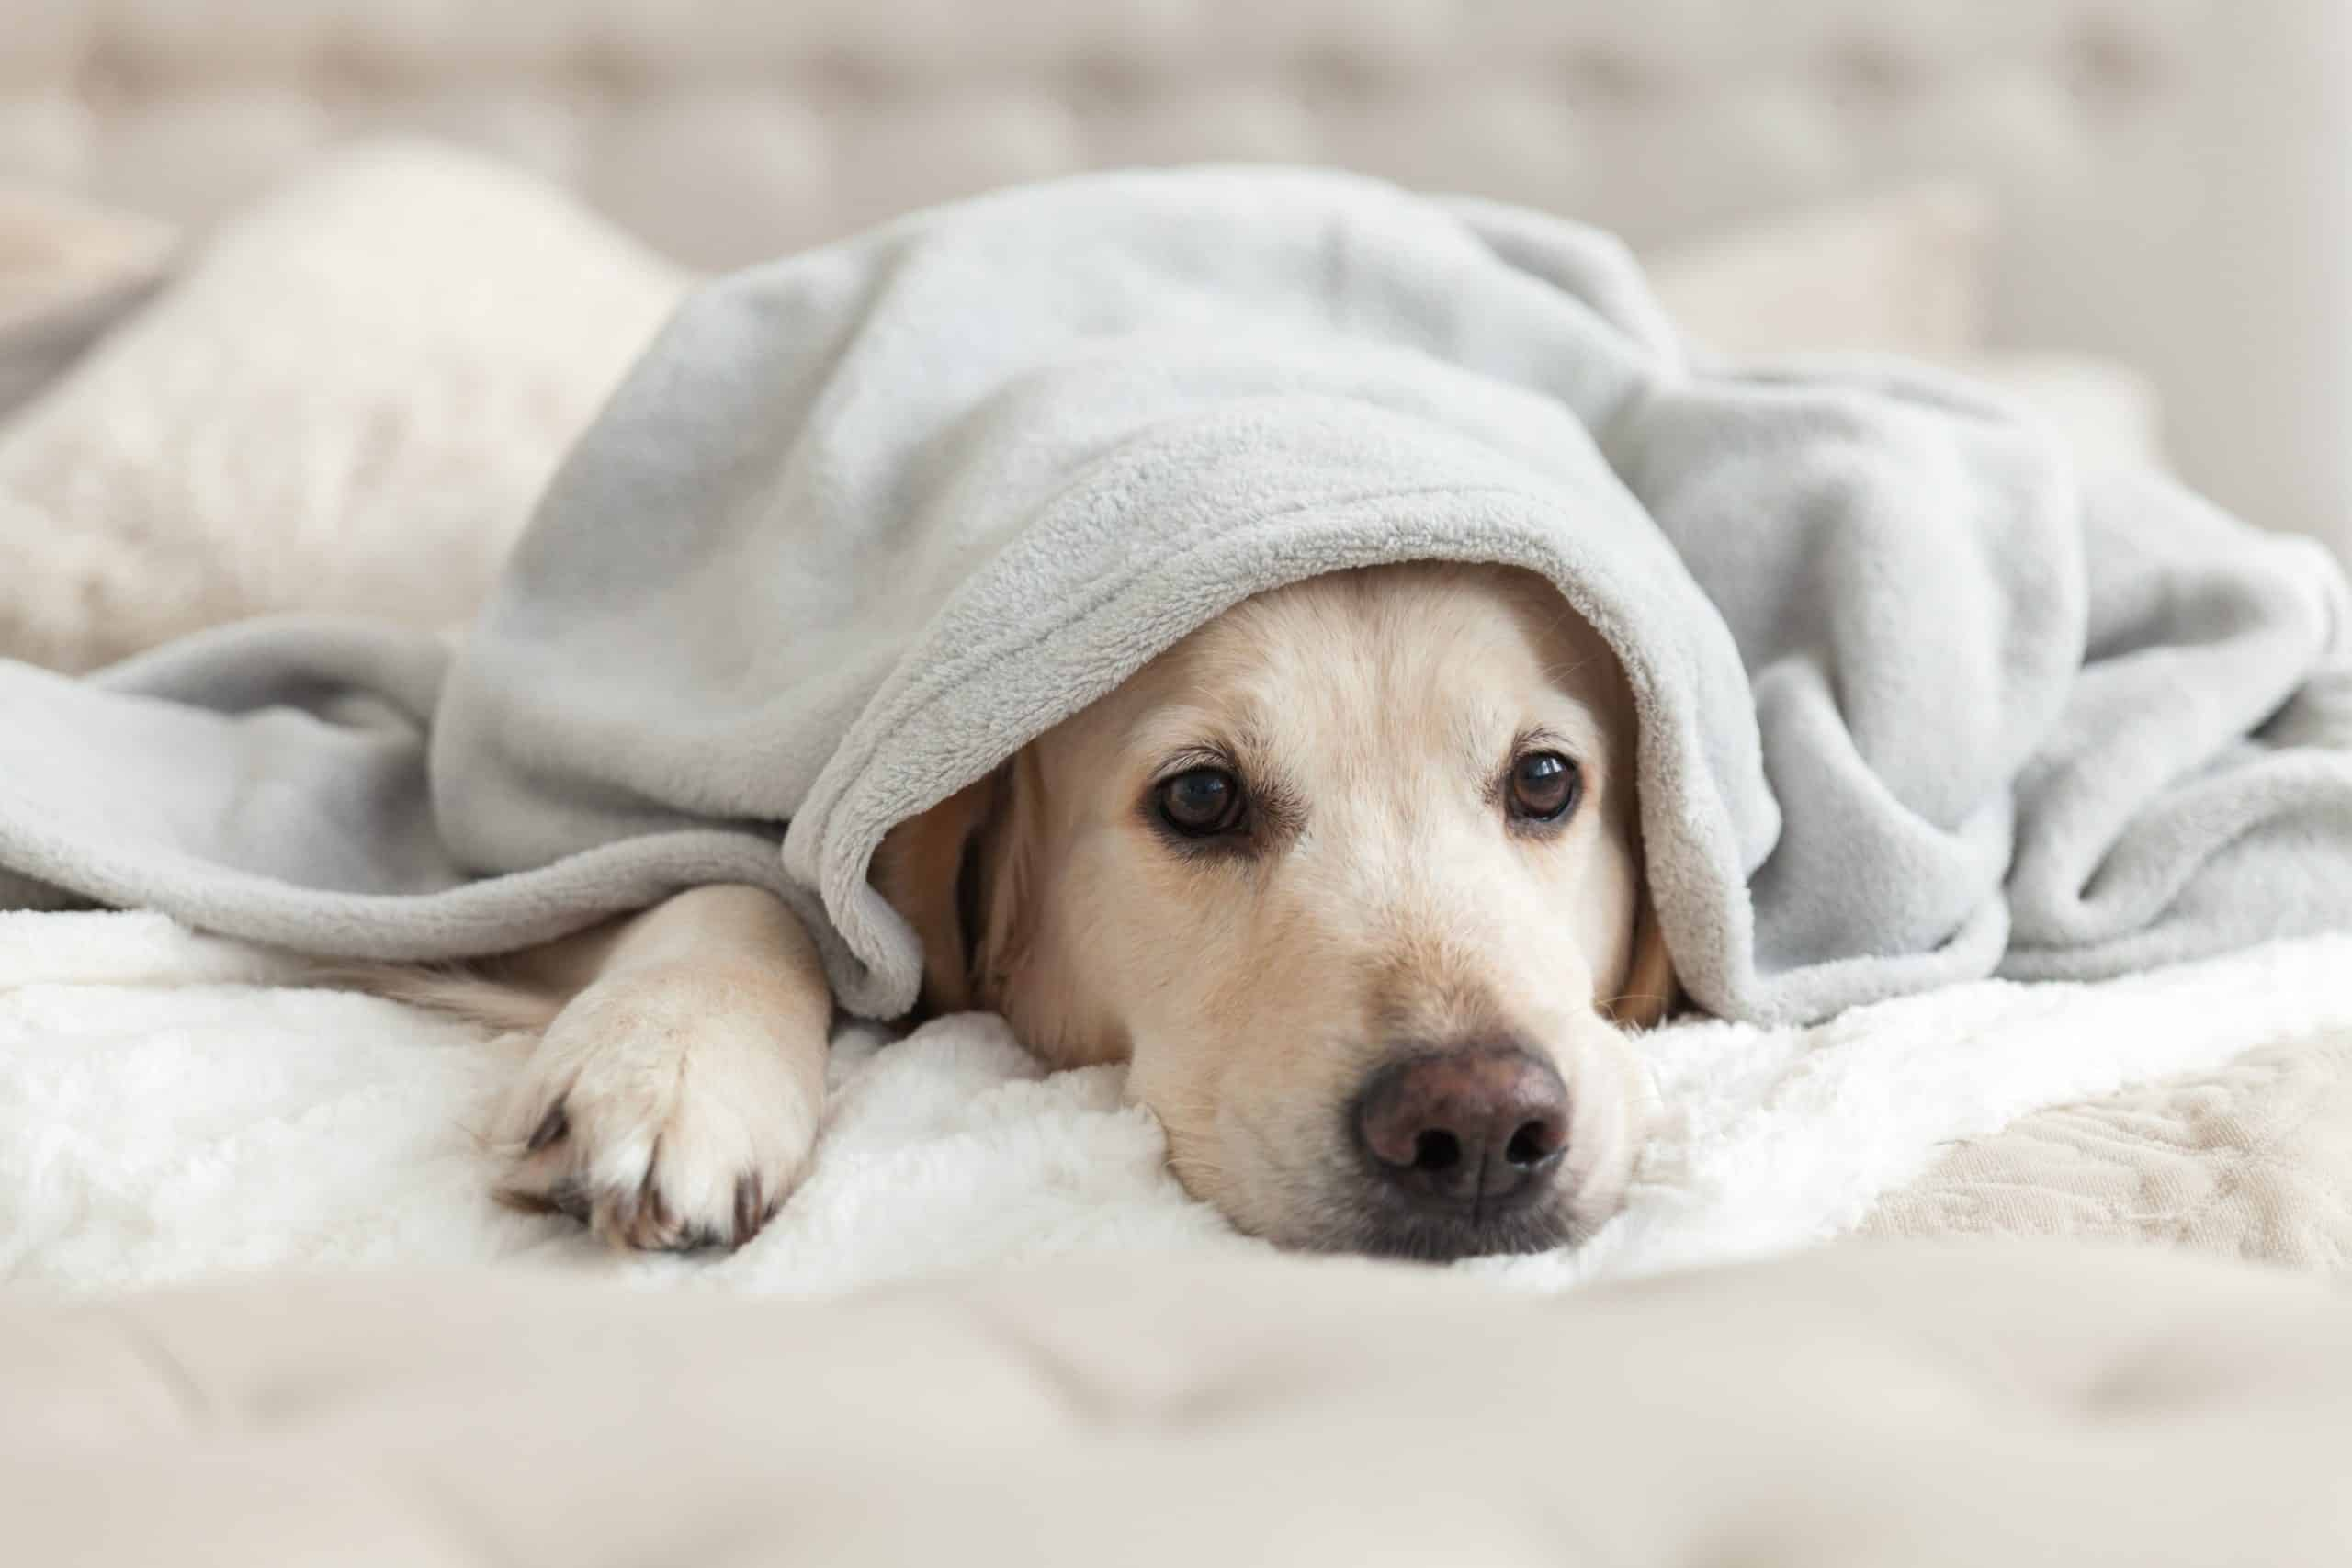 Sad Golden Retriever hides under a blanket. Side effects of Trazodone for dogs can include hiding or avoiding contact with people and other dogs.